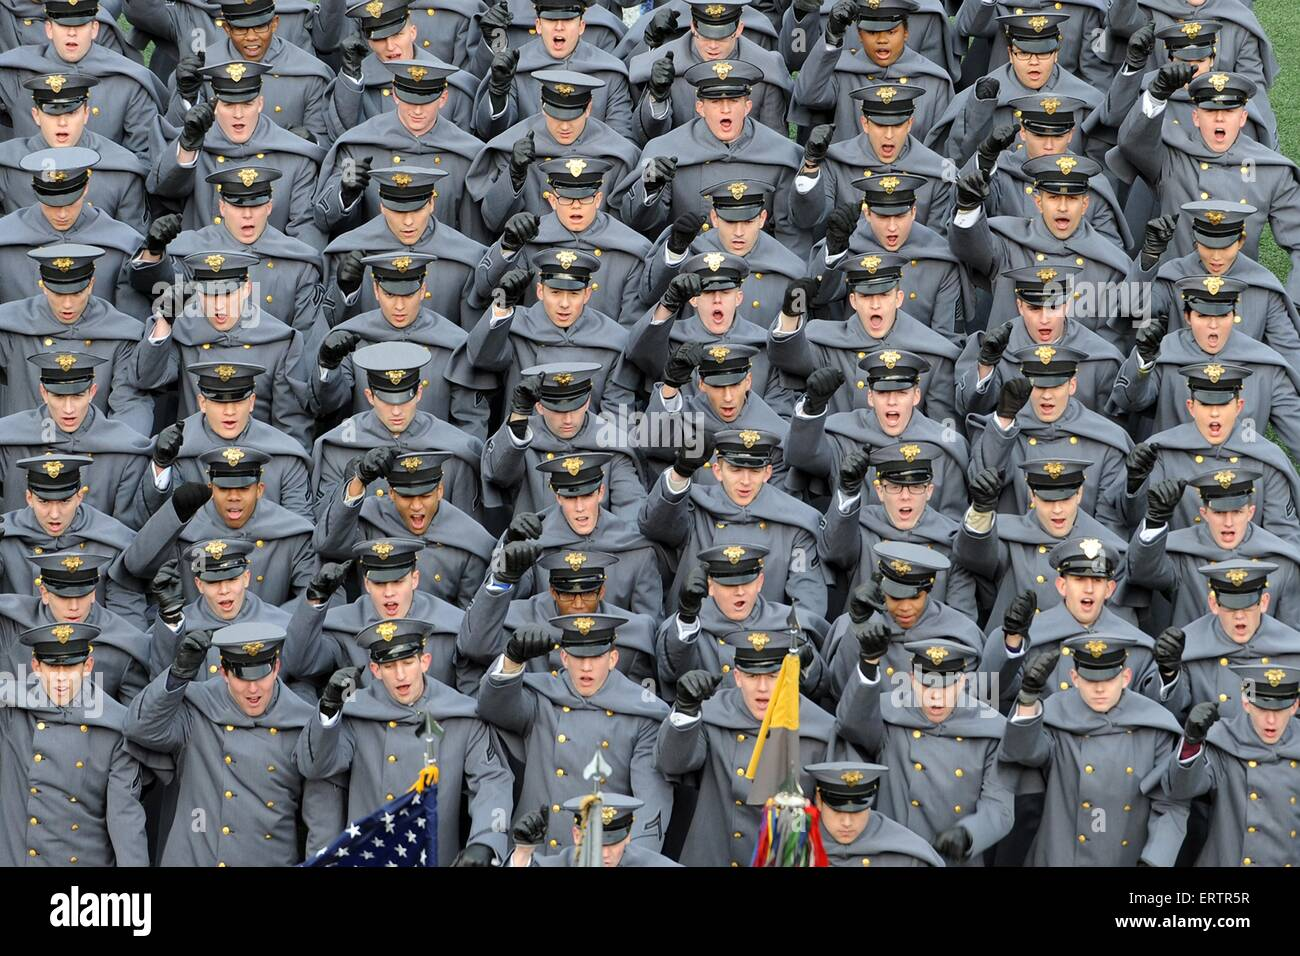 US Army West Point cadets in winter uniform cheer for his team during the 115th Army-Navy football game December - Stock Image